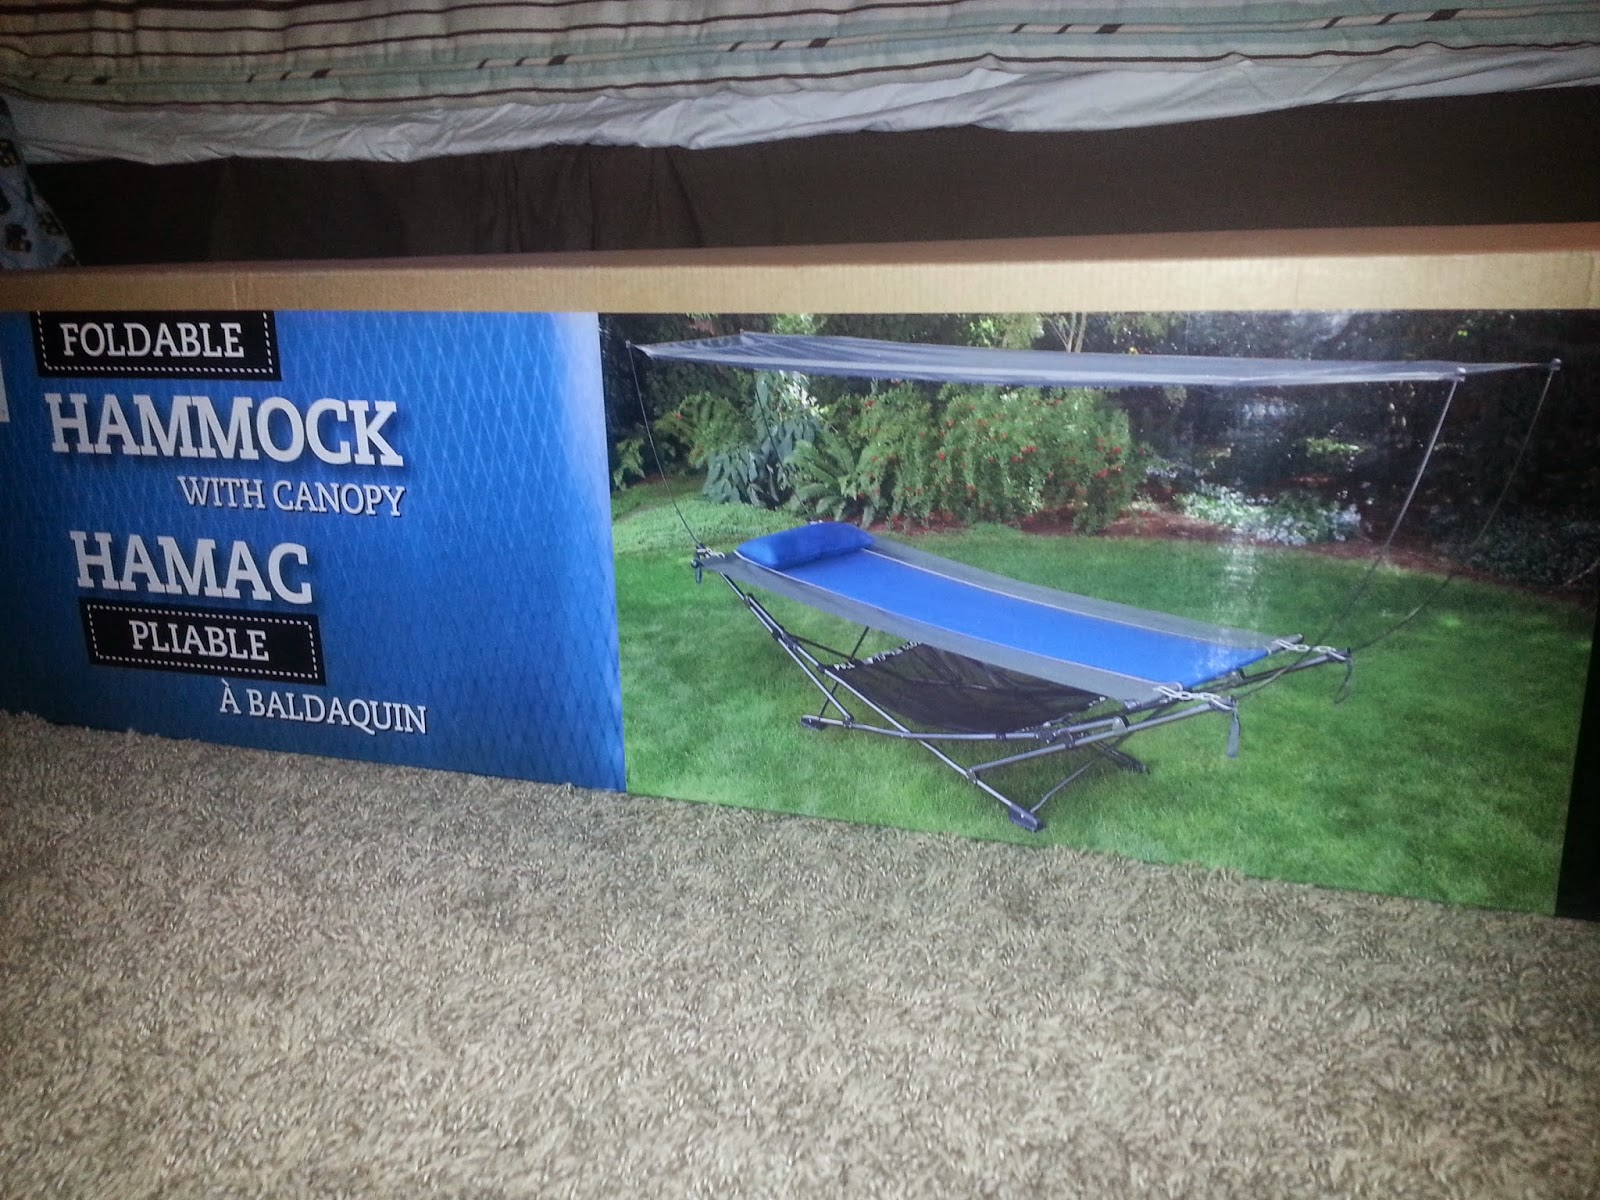 Foldable hammock with canopy Abaldaquin. Two available. $75 each & Have I Got A Deal For You!